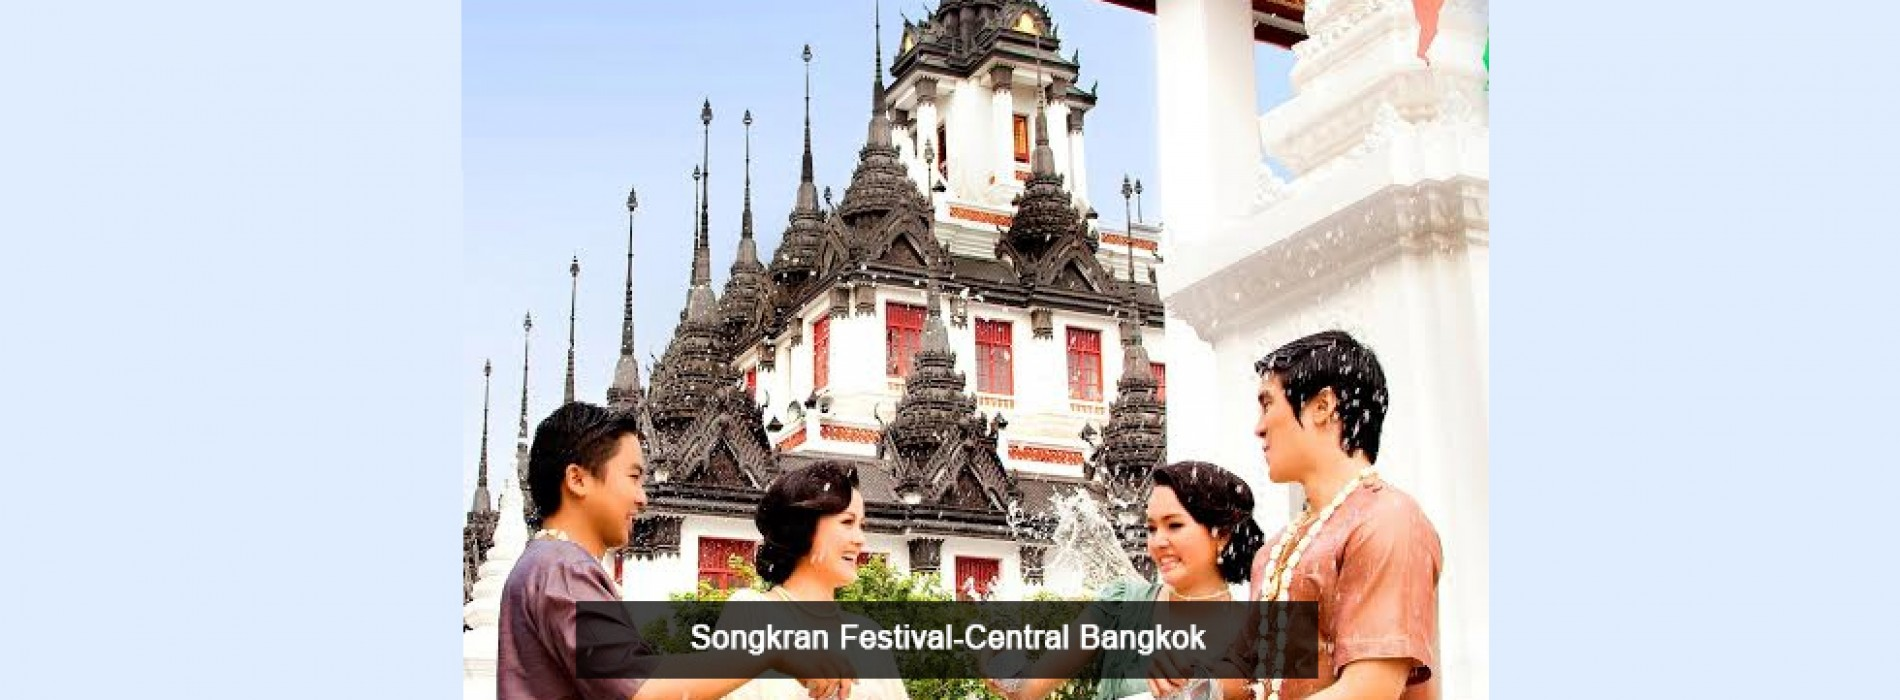 Experience fun-filled Songkran festival in Thailand